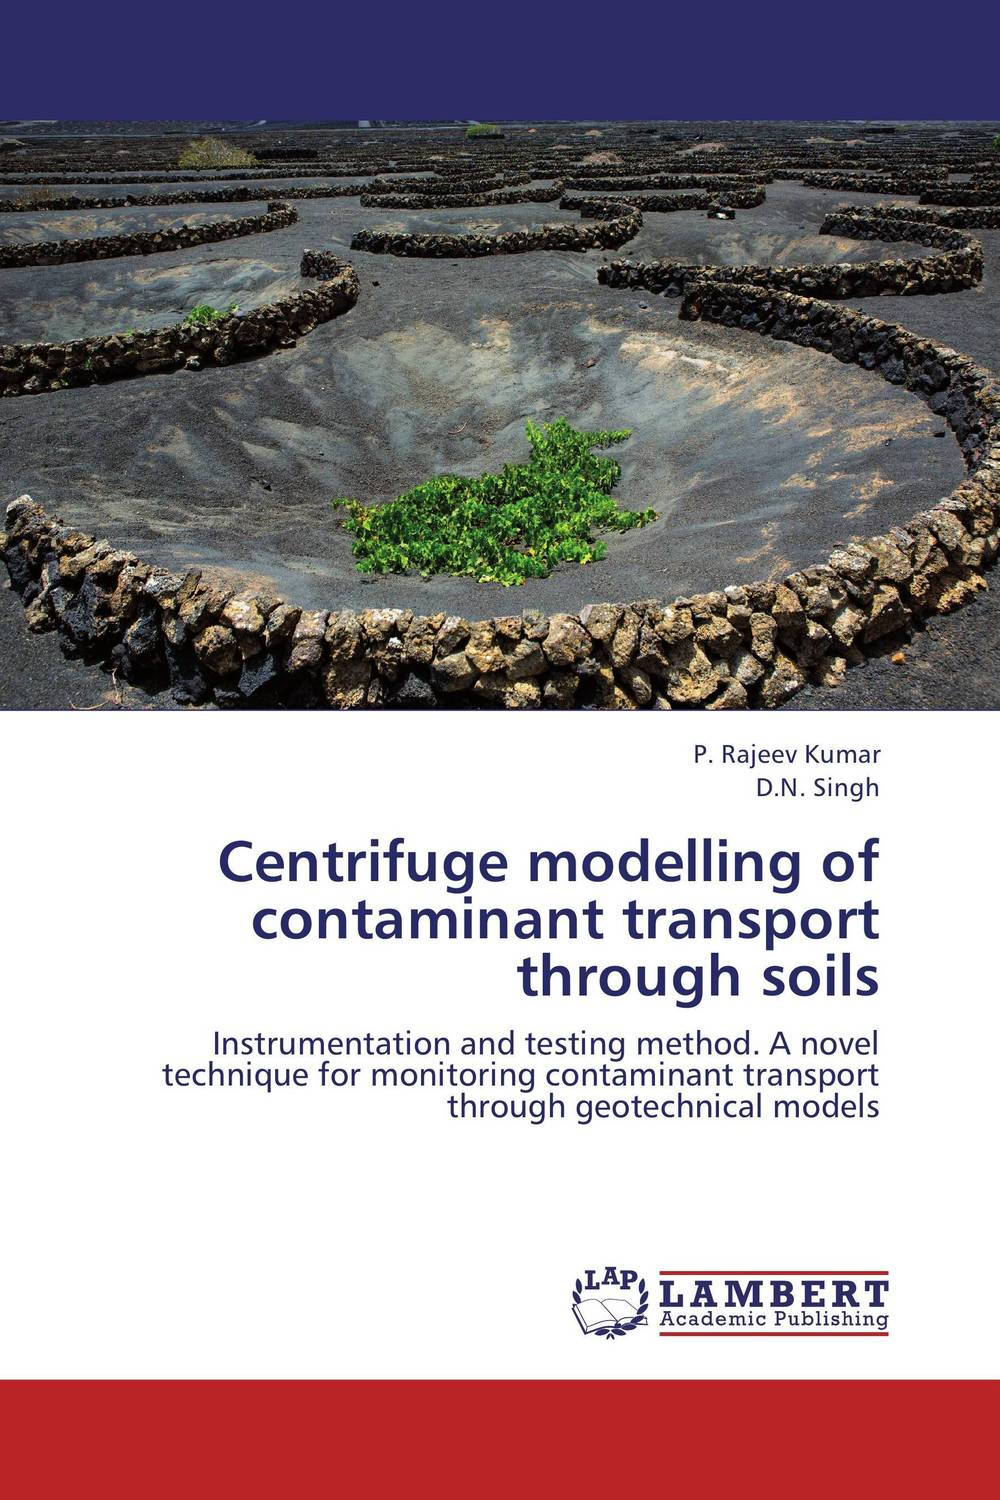 Centrifuge modelling of contaminant transport through soils брюки miss miss by valentina miss miss by valentina mi059ewatga9